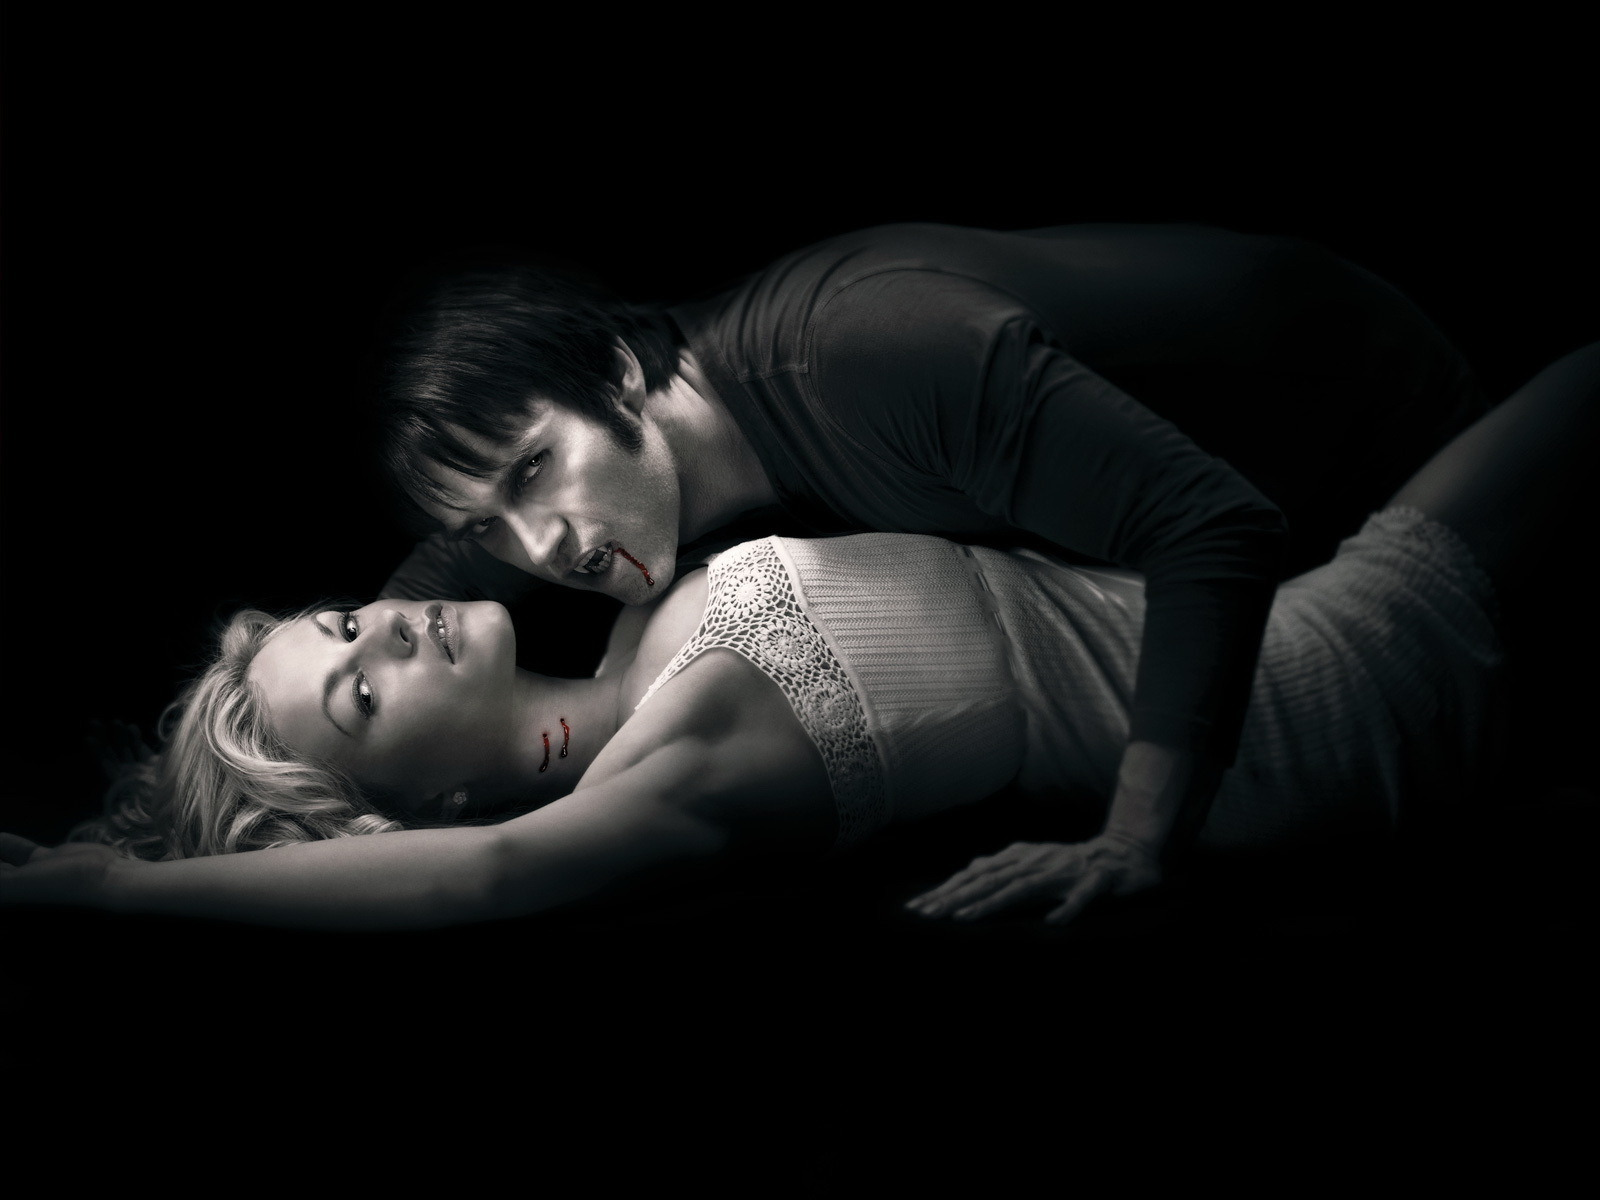 30846 download wallpaper Cinema, People, Vampires, True Blood screensavers and pictures for free